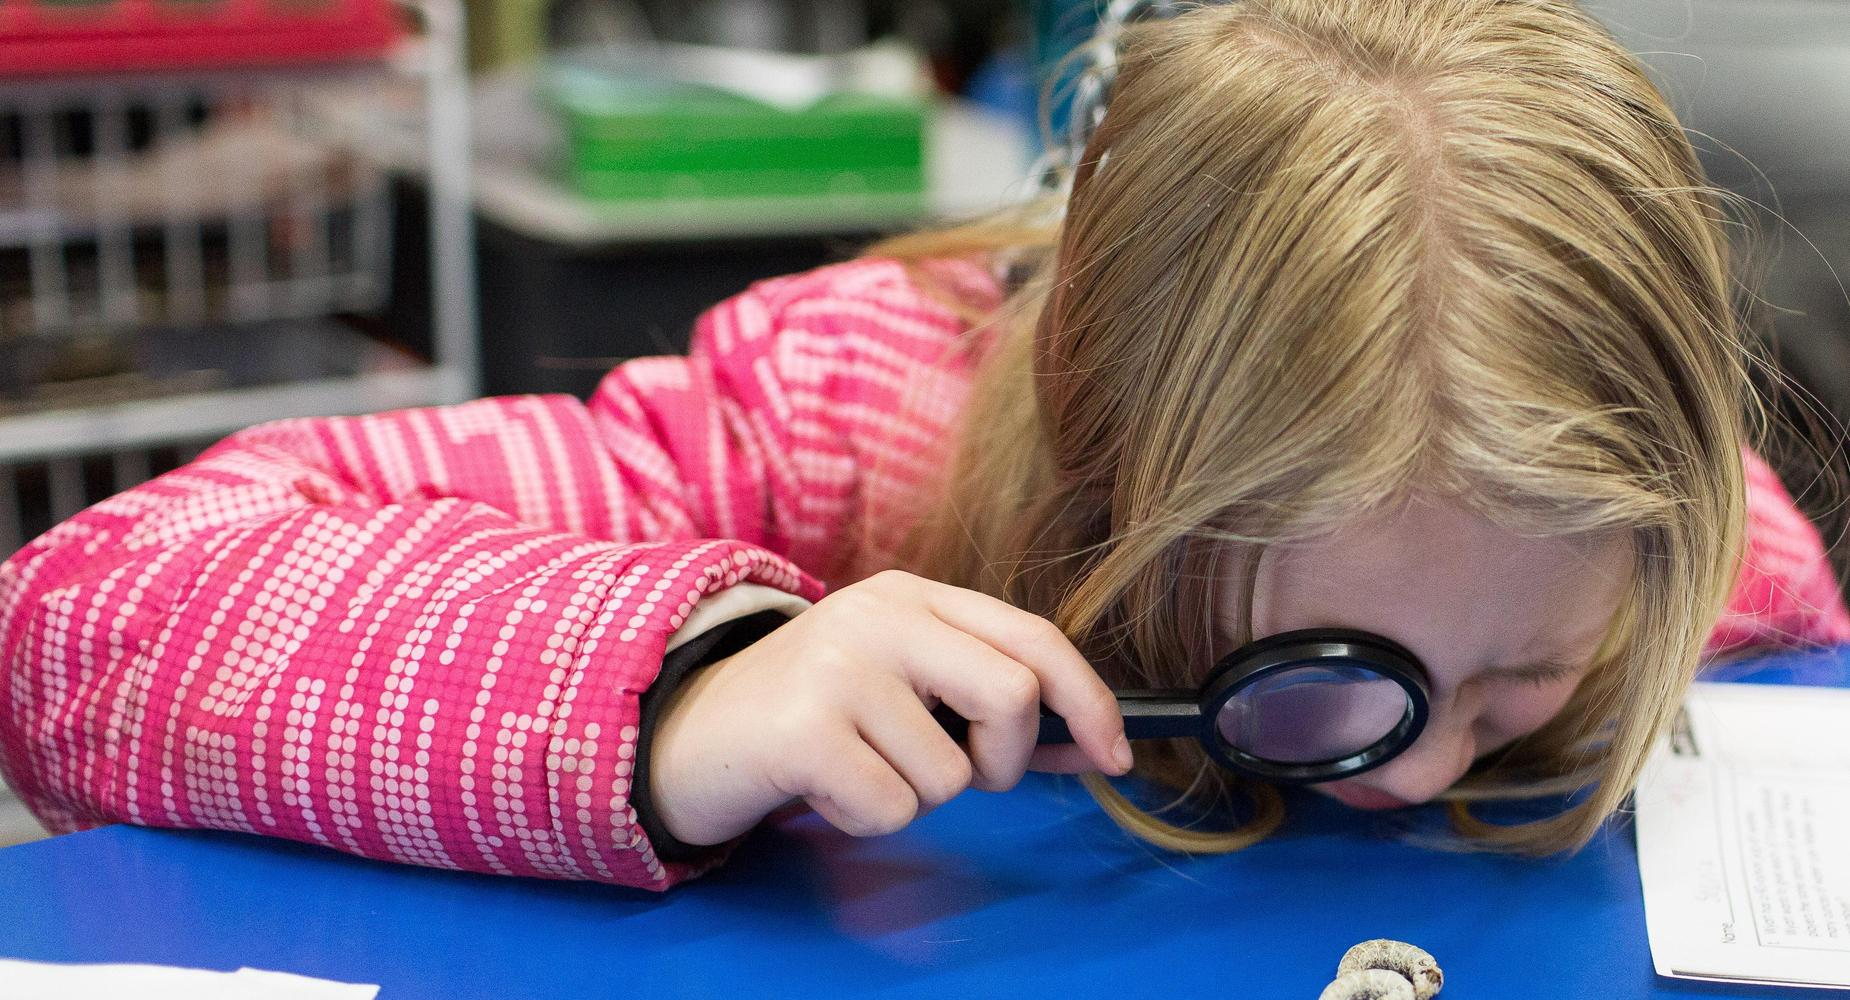 3rd Grader looking at a silk worm with a magnifying glass